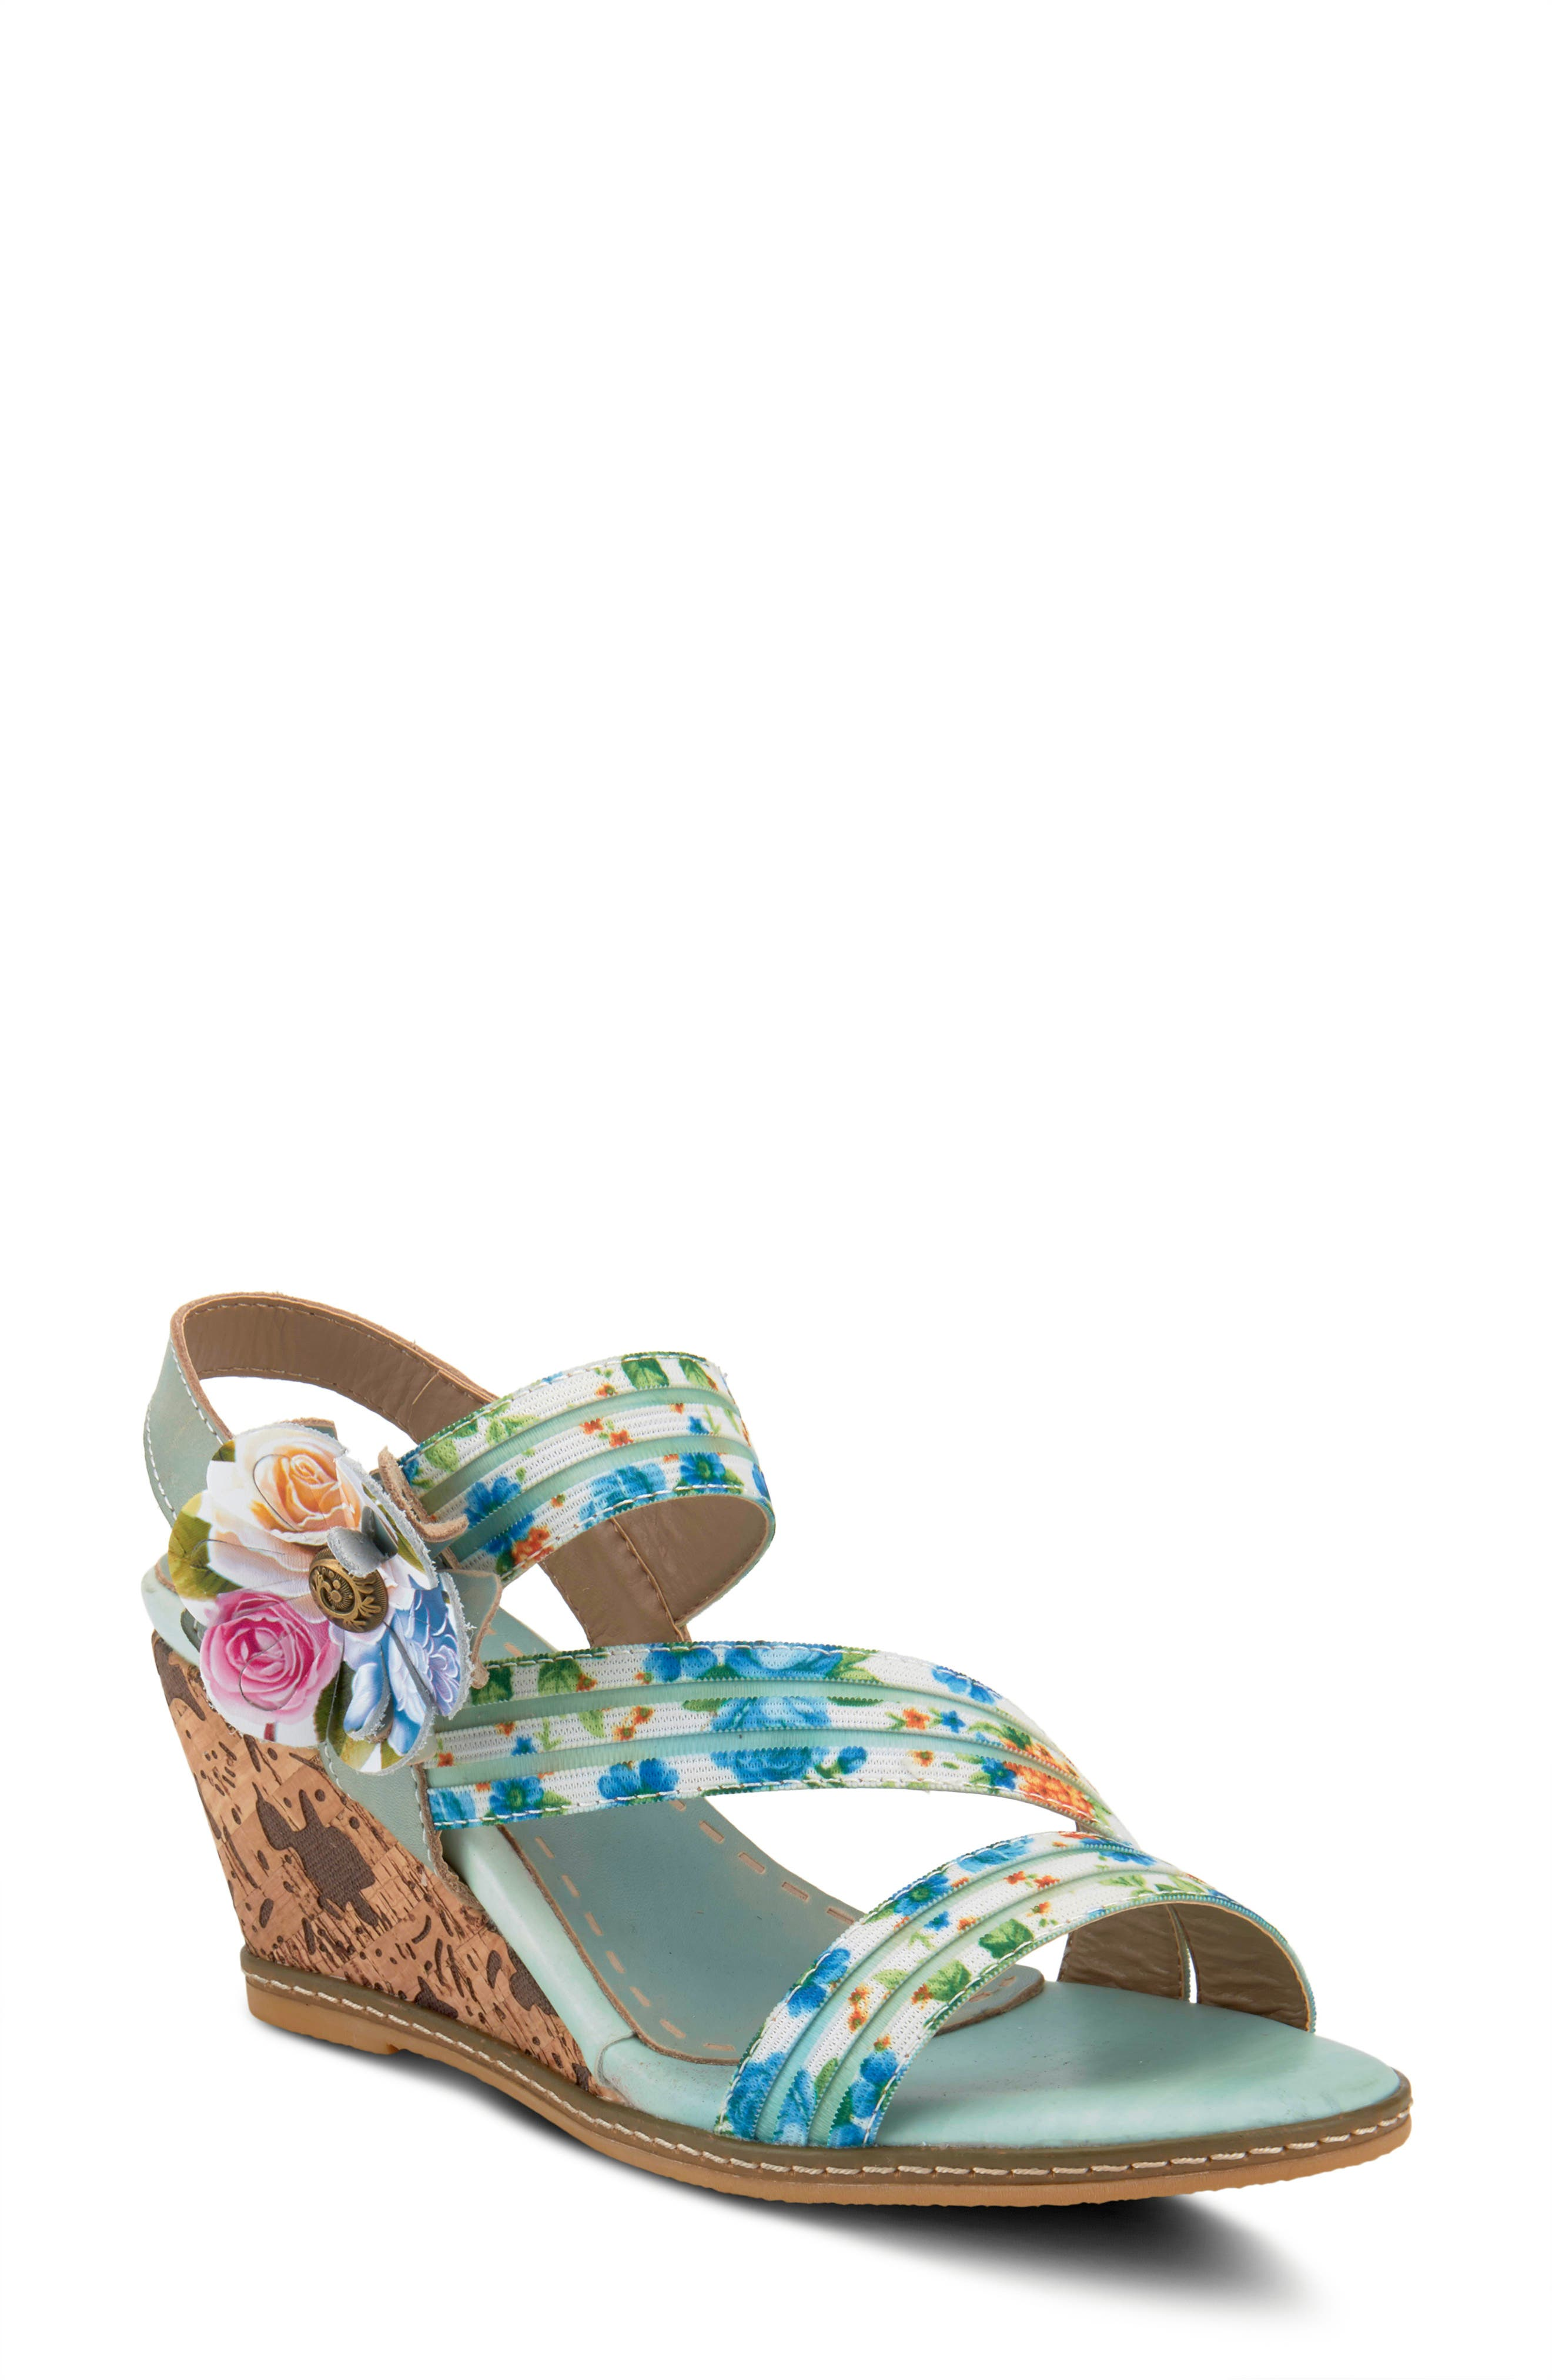 An oversized blossom and lively floral print bring vibrant color to a strappy wedge sandal furnished with a cushy footbed. Style Name:L\\\'Artiste Landy Wedge Sandal (Women). Style Number: 5980132 1. Available in stores.